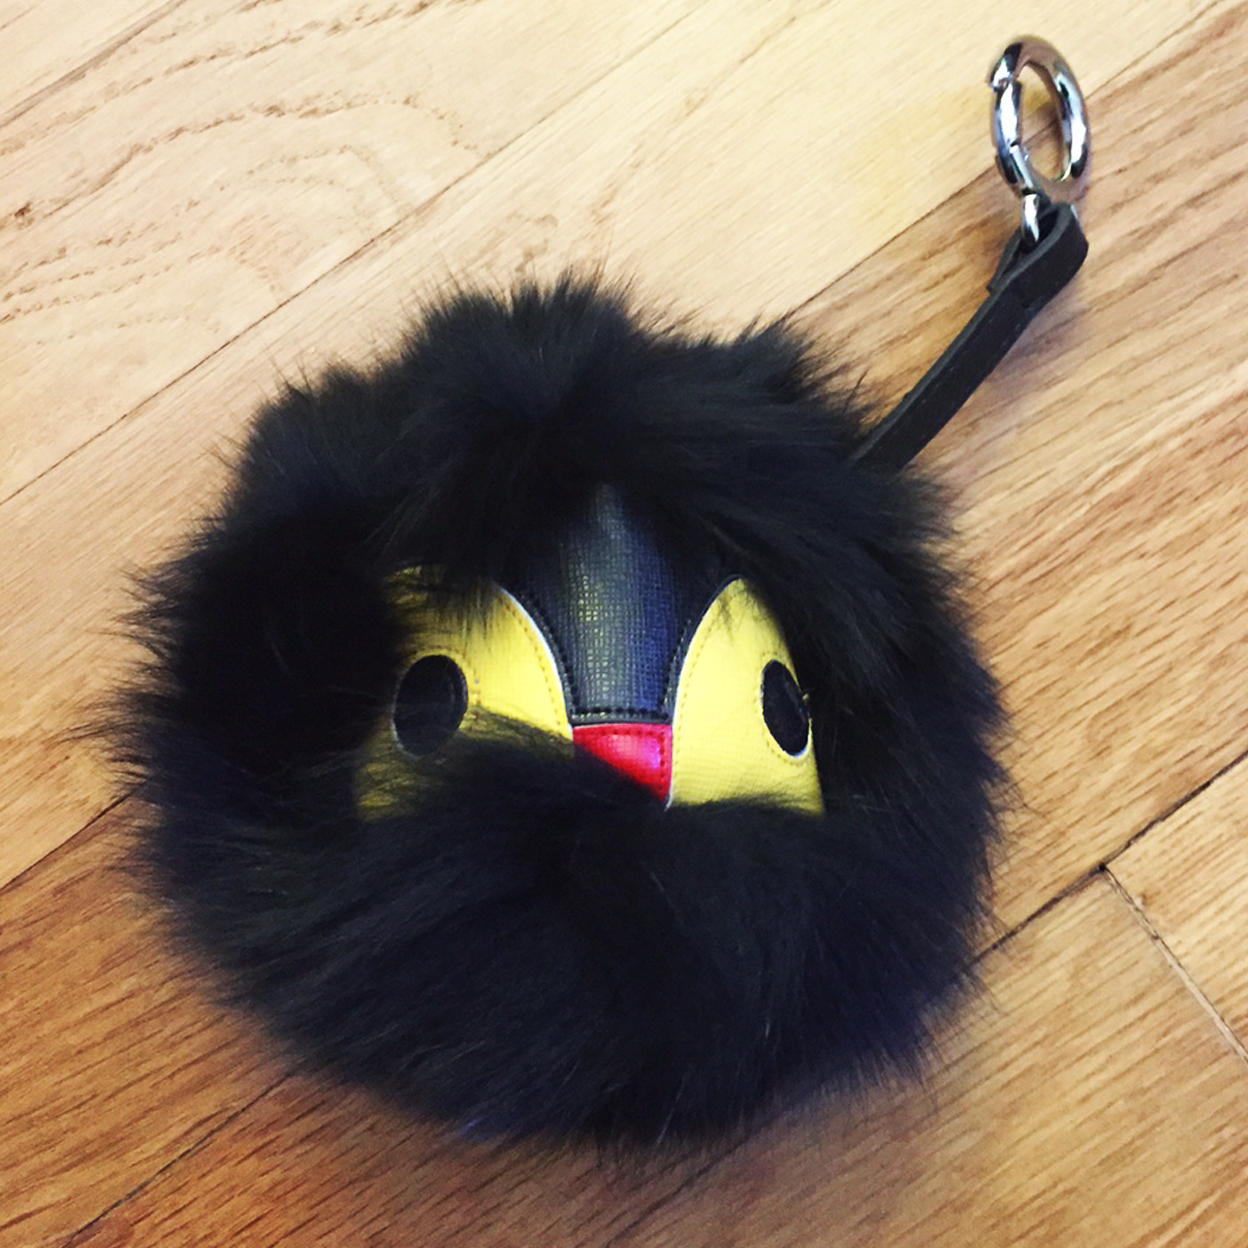 Mink & Wool Designer Fur Bugs for your Purse or Handbag (Women's Designer Bag Charms) - Black/Yellow (3D Luxe) photo